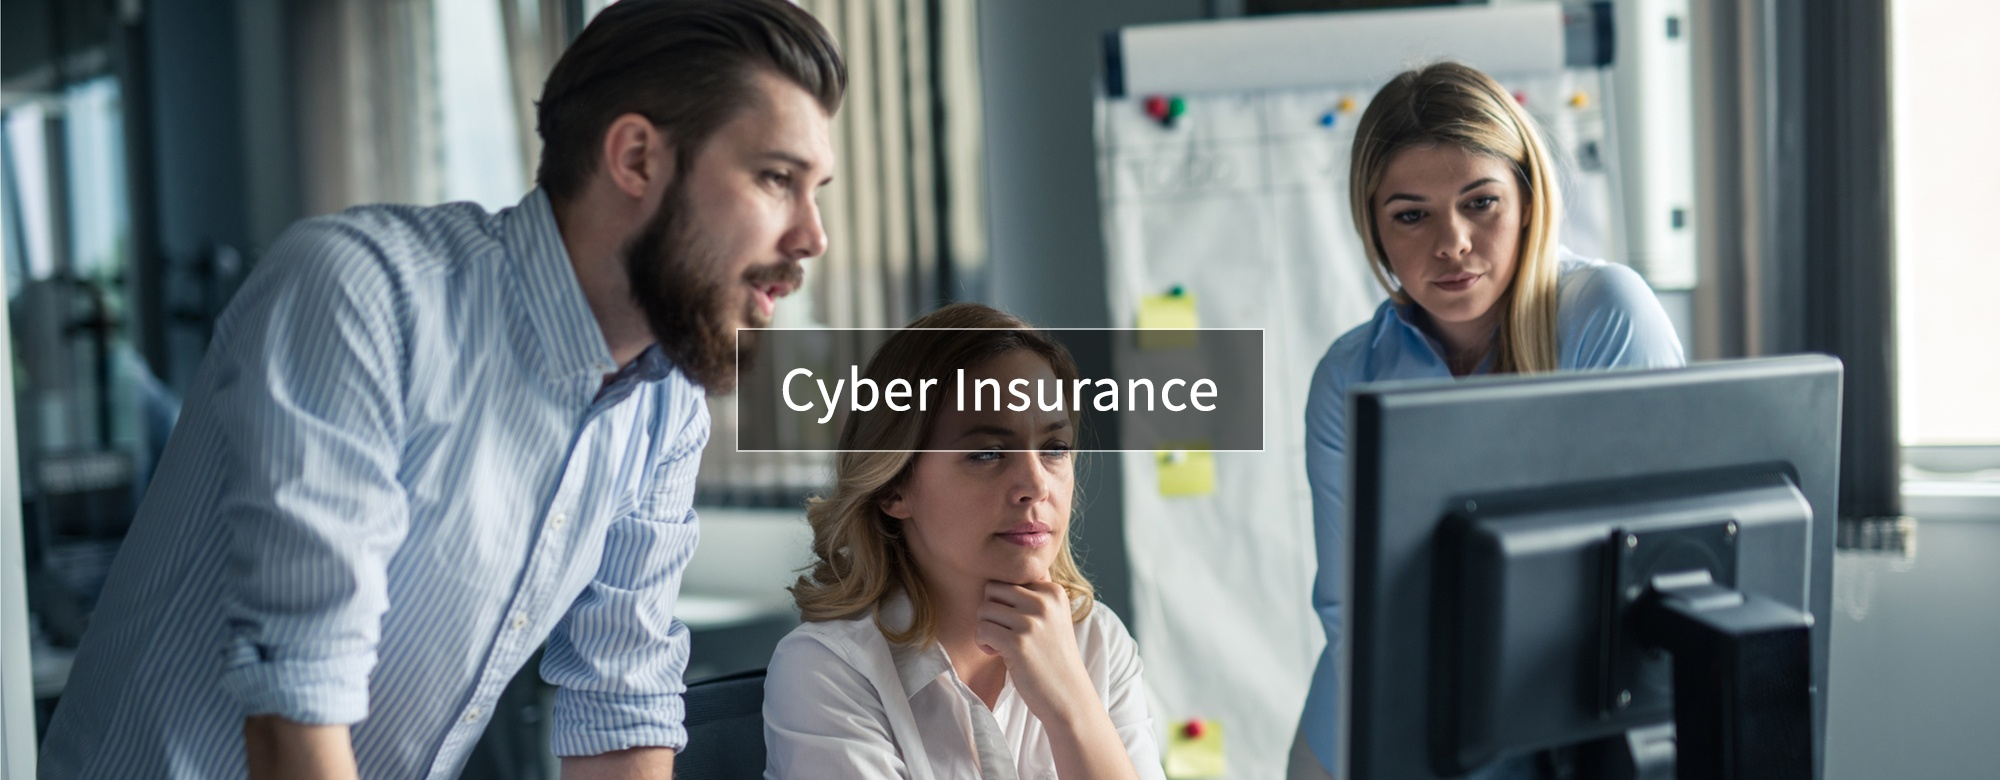 Cyber Insurance in Massachusetts